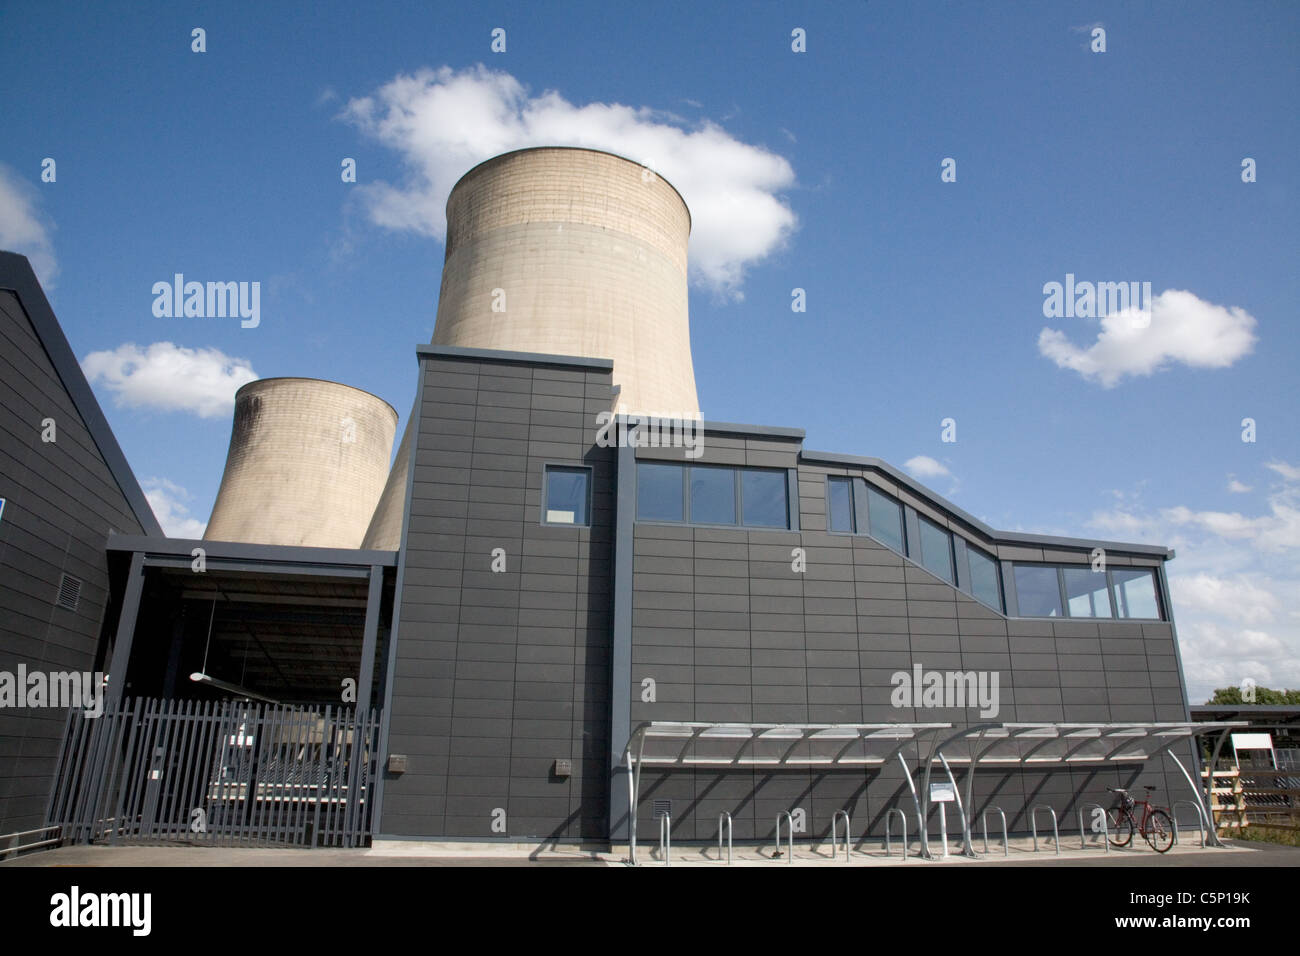 East Midlands Parkway train station - Stock Image